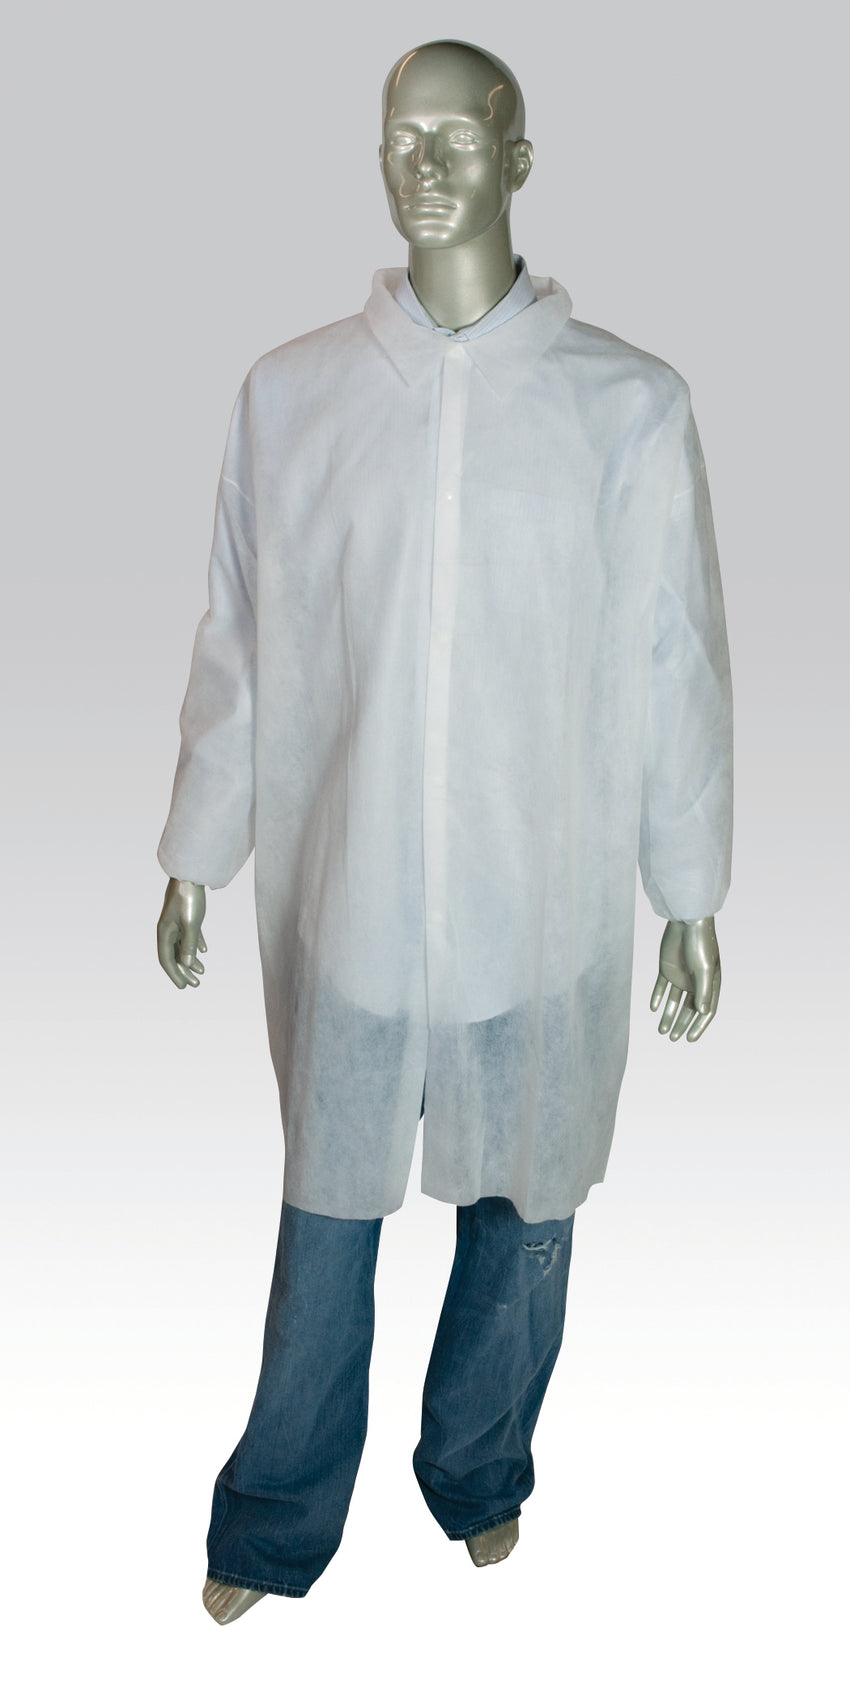 POLY PRO L LAB COAT HD NO POCKETS, ELASTIC WRISTS